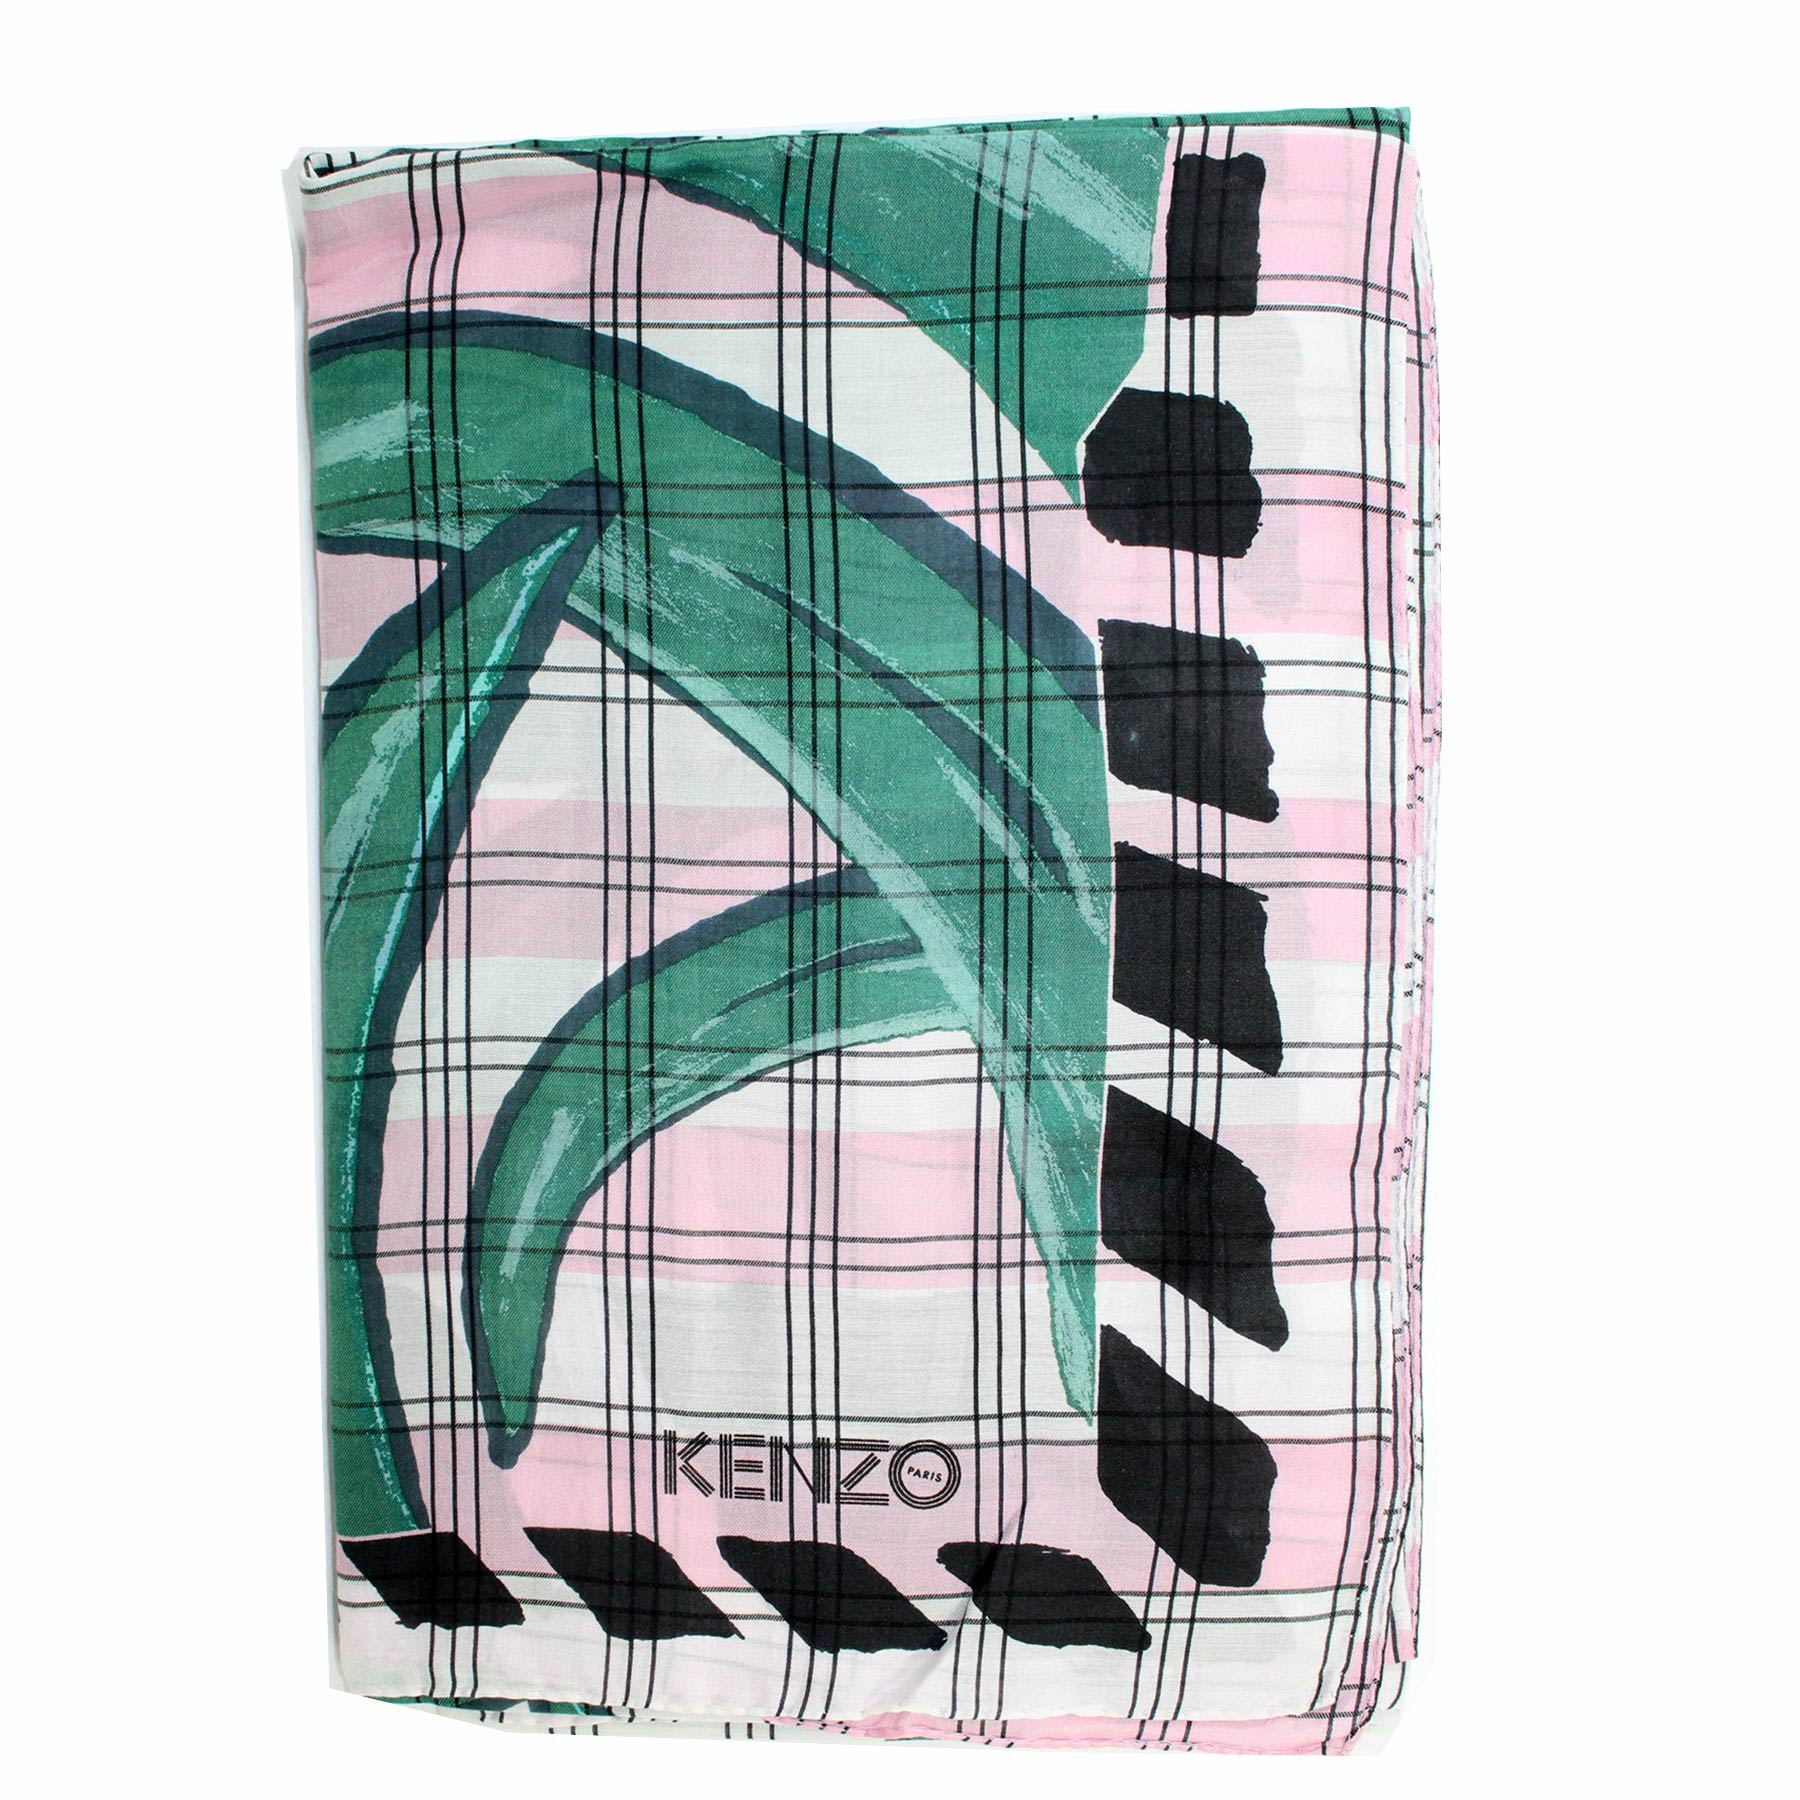 Kenzo Scarf Green Pink